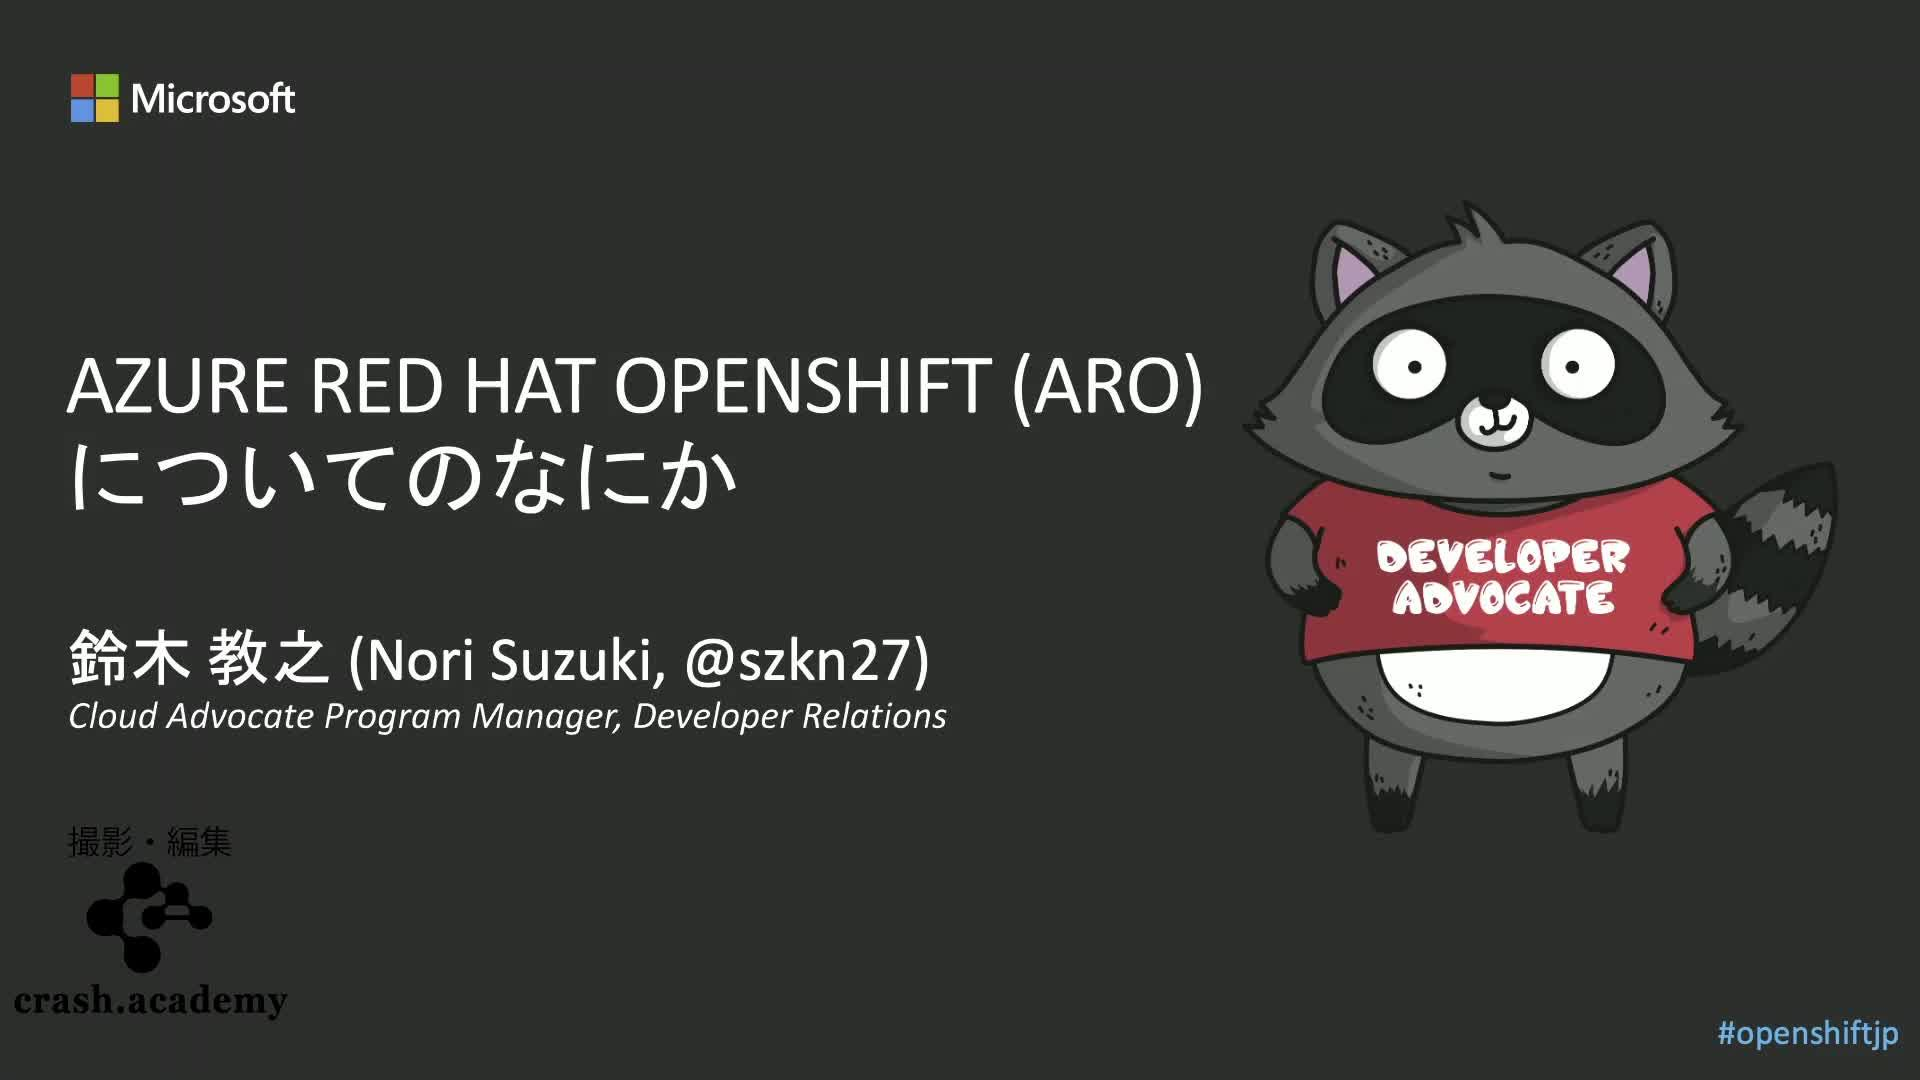 AZURE RED HAT OPENSHIFT(ARO)についてのなにか